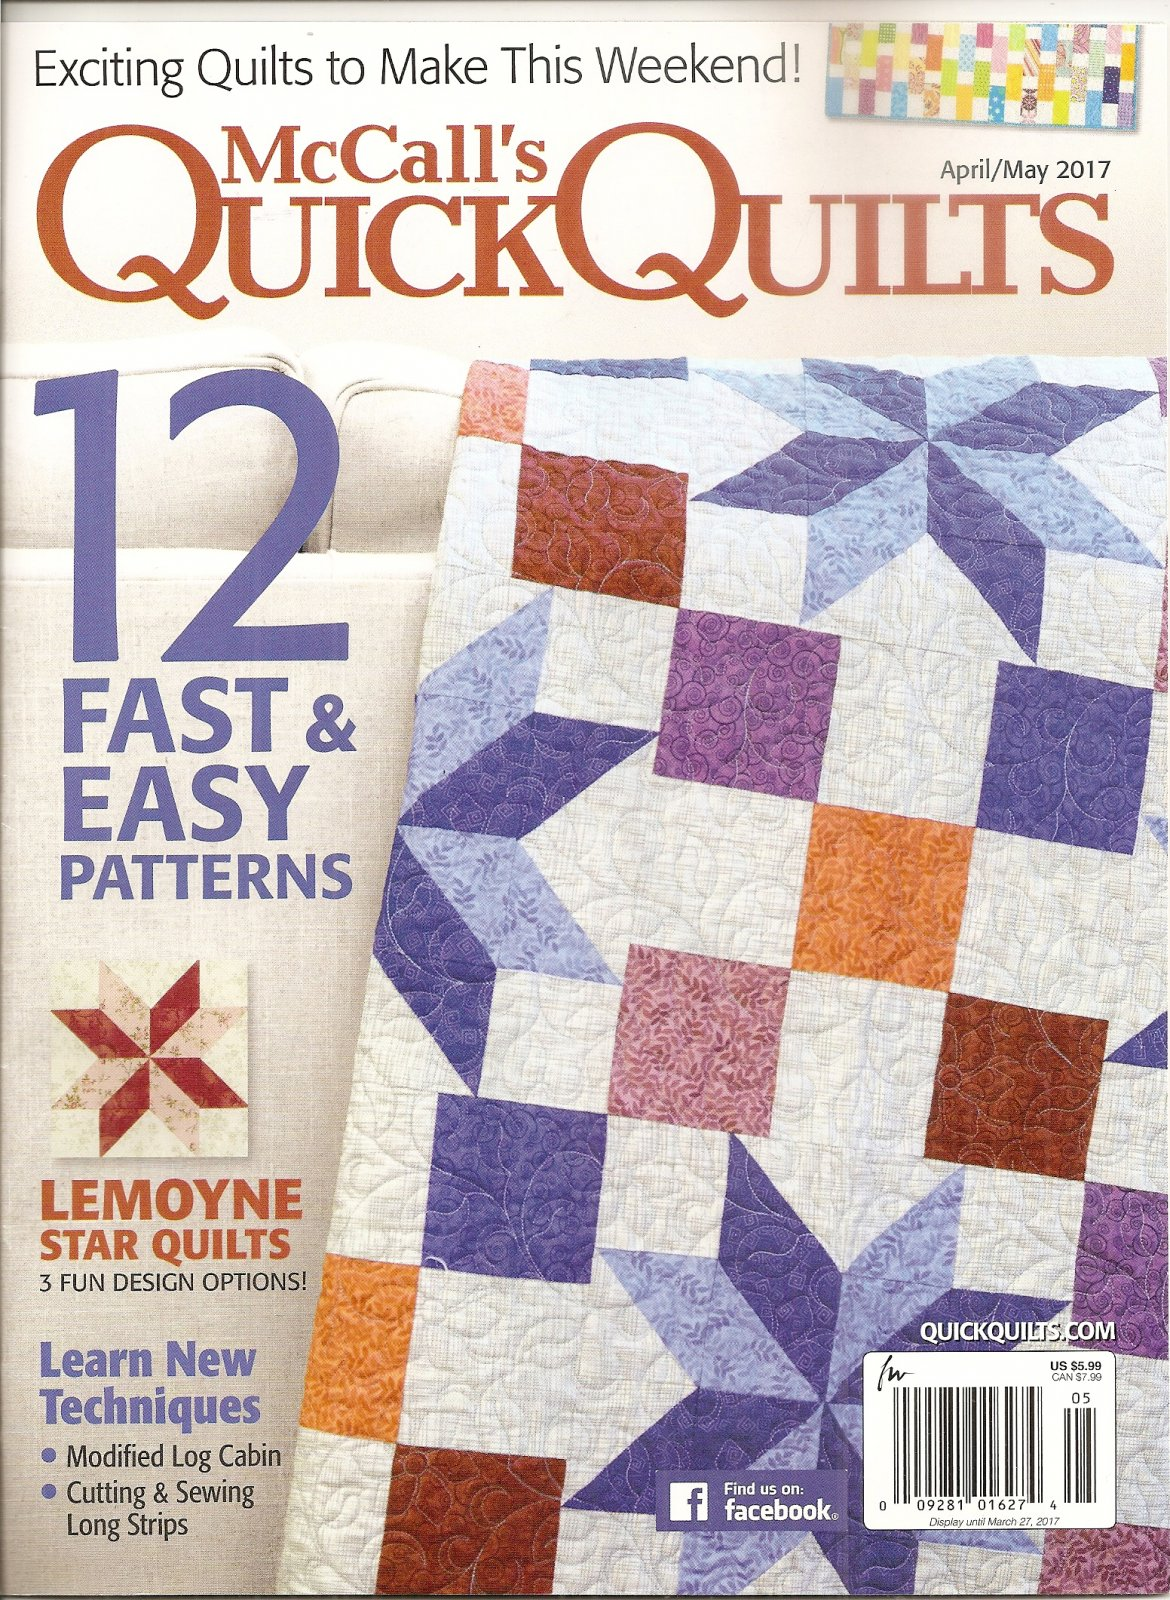 McCall's Quick Quilts April/May 2017